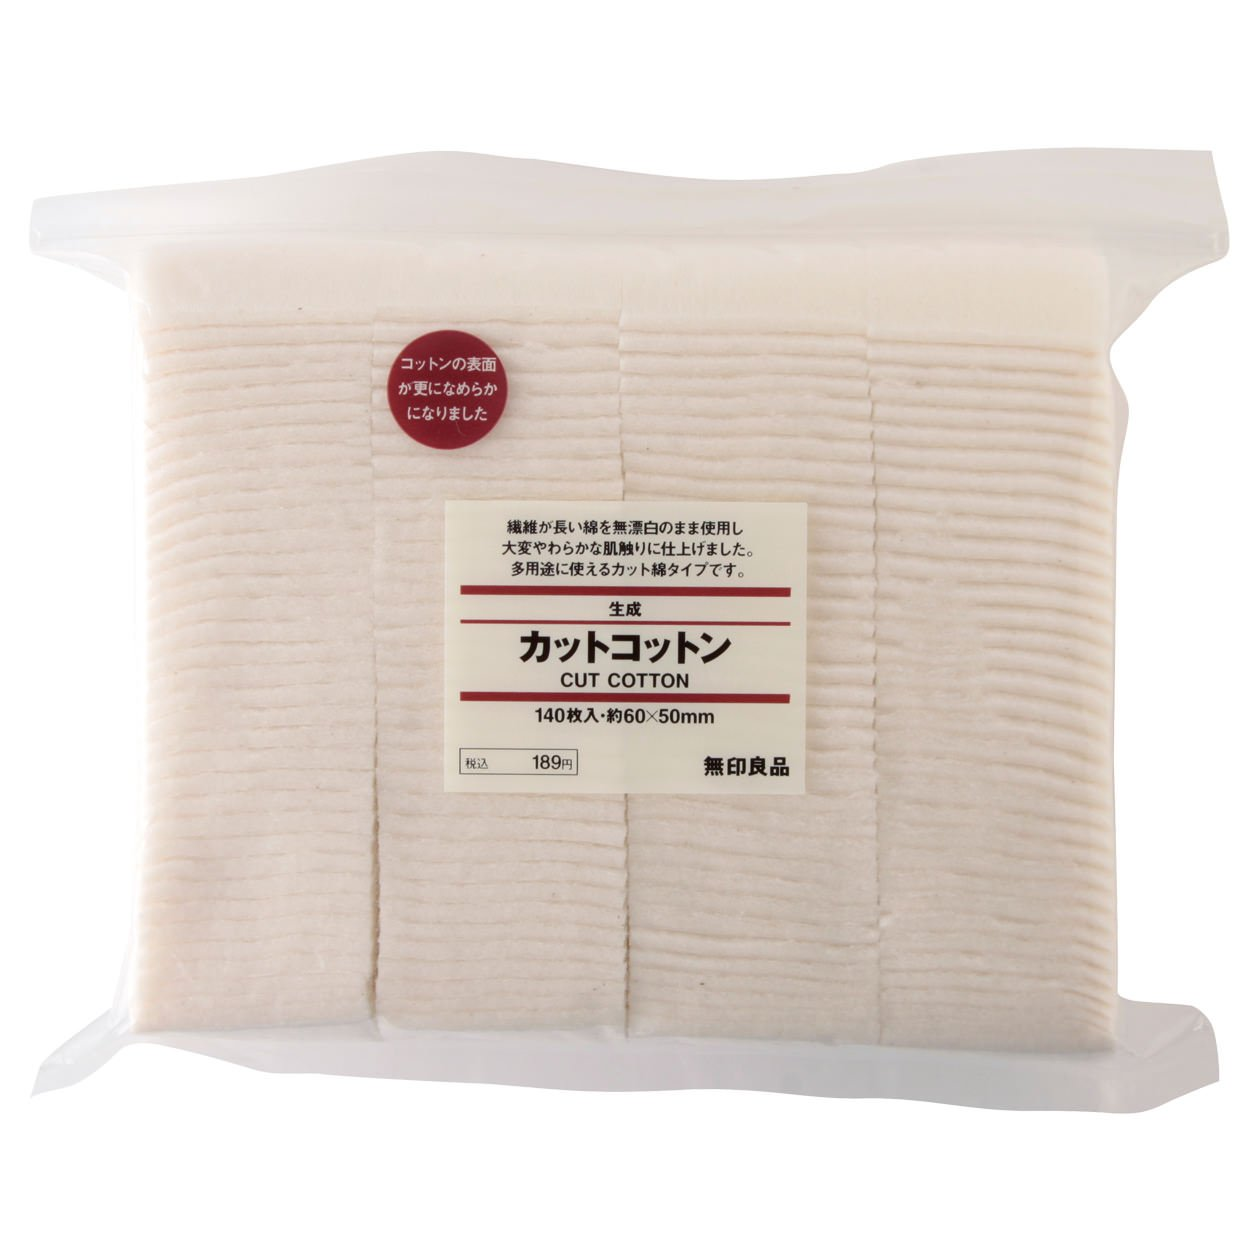 MUJI Makeup Facial Soft Cut Cotton Unbleached 60x50 mm 140pcs